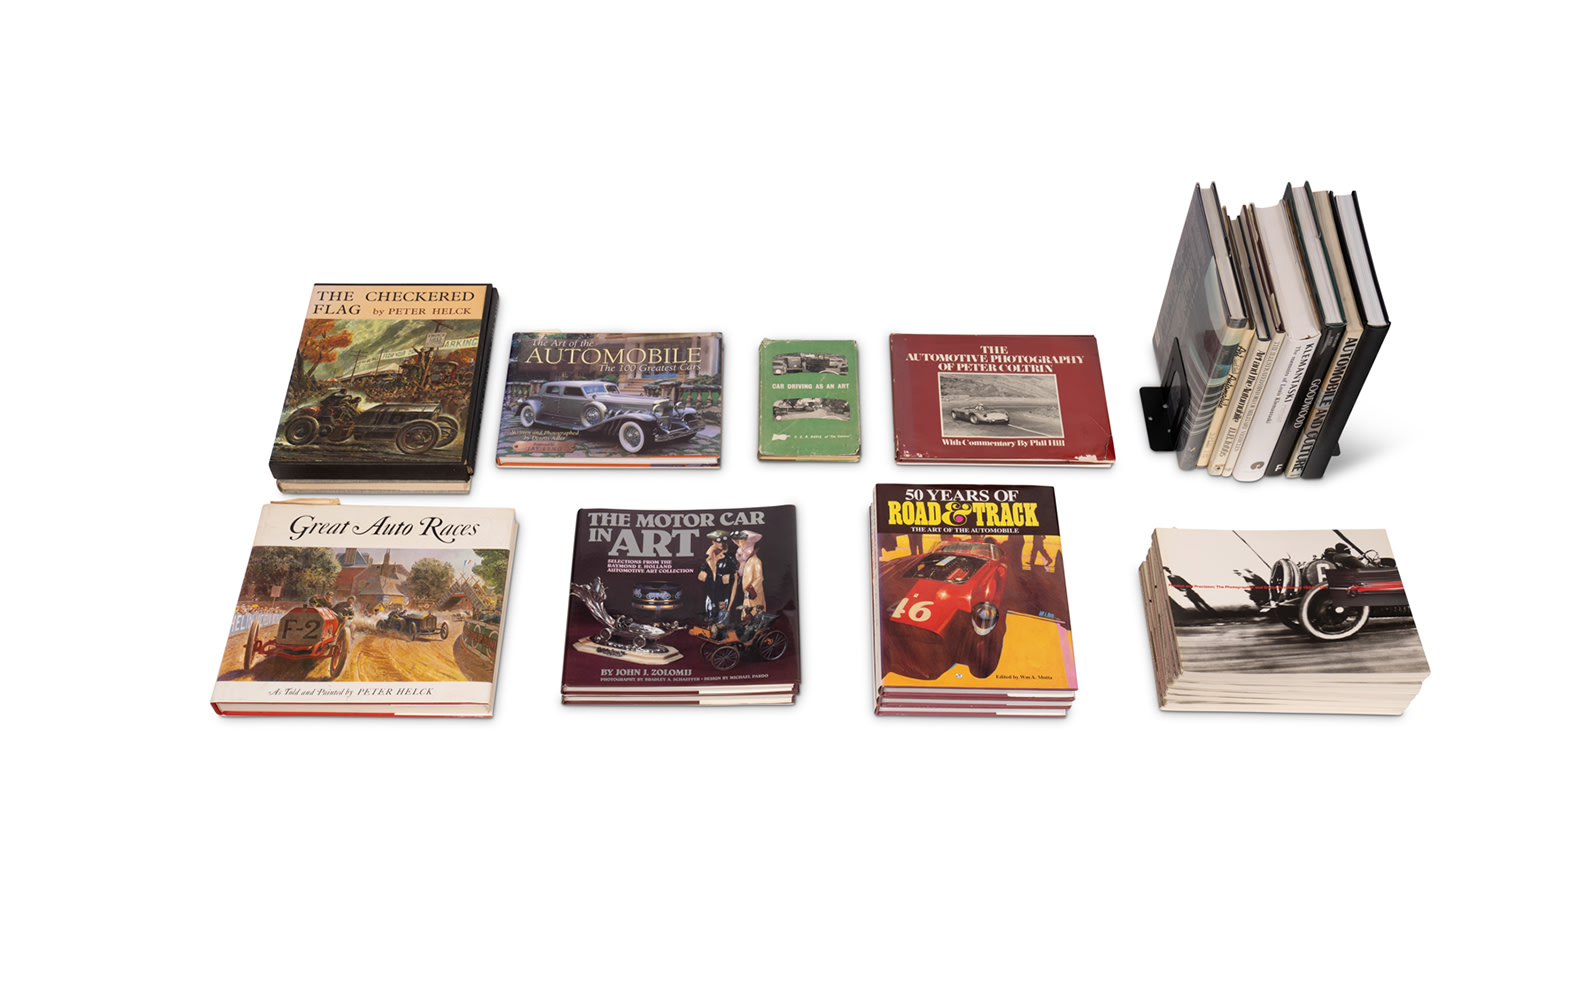 Assorted Books on Automobiles as Art